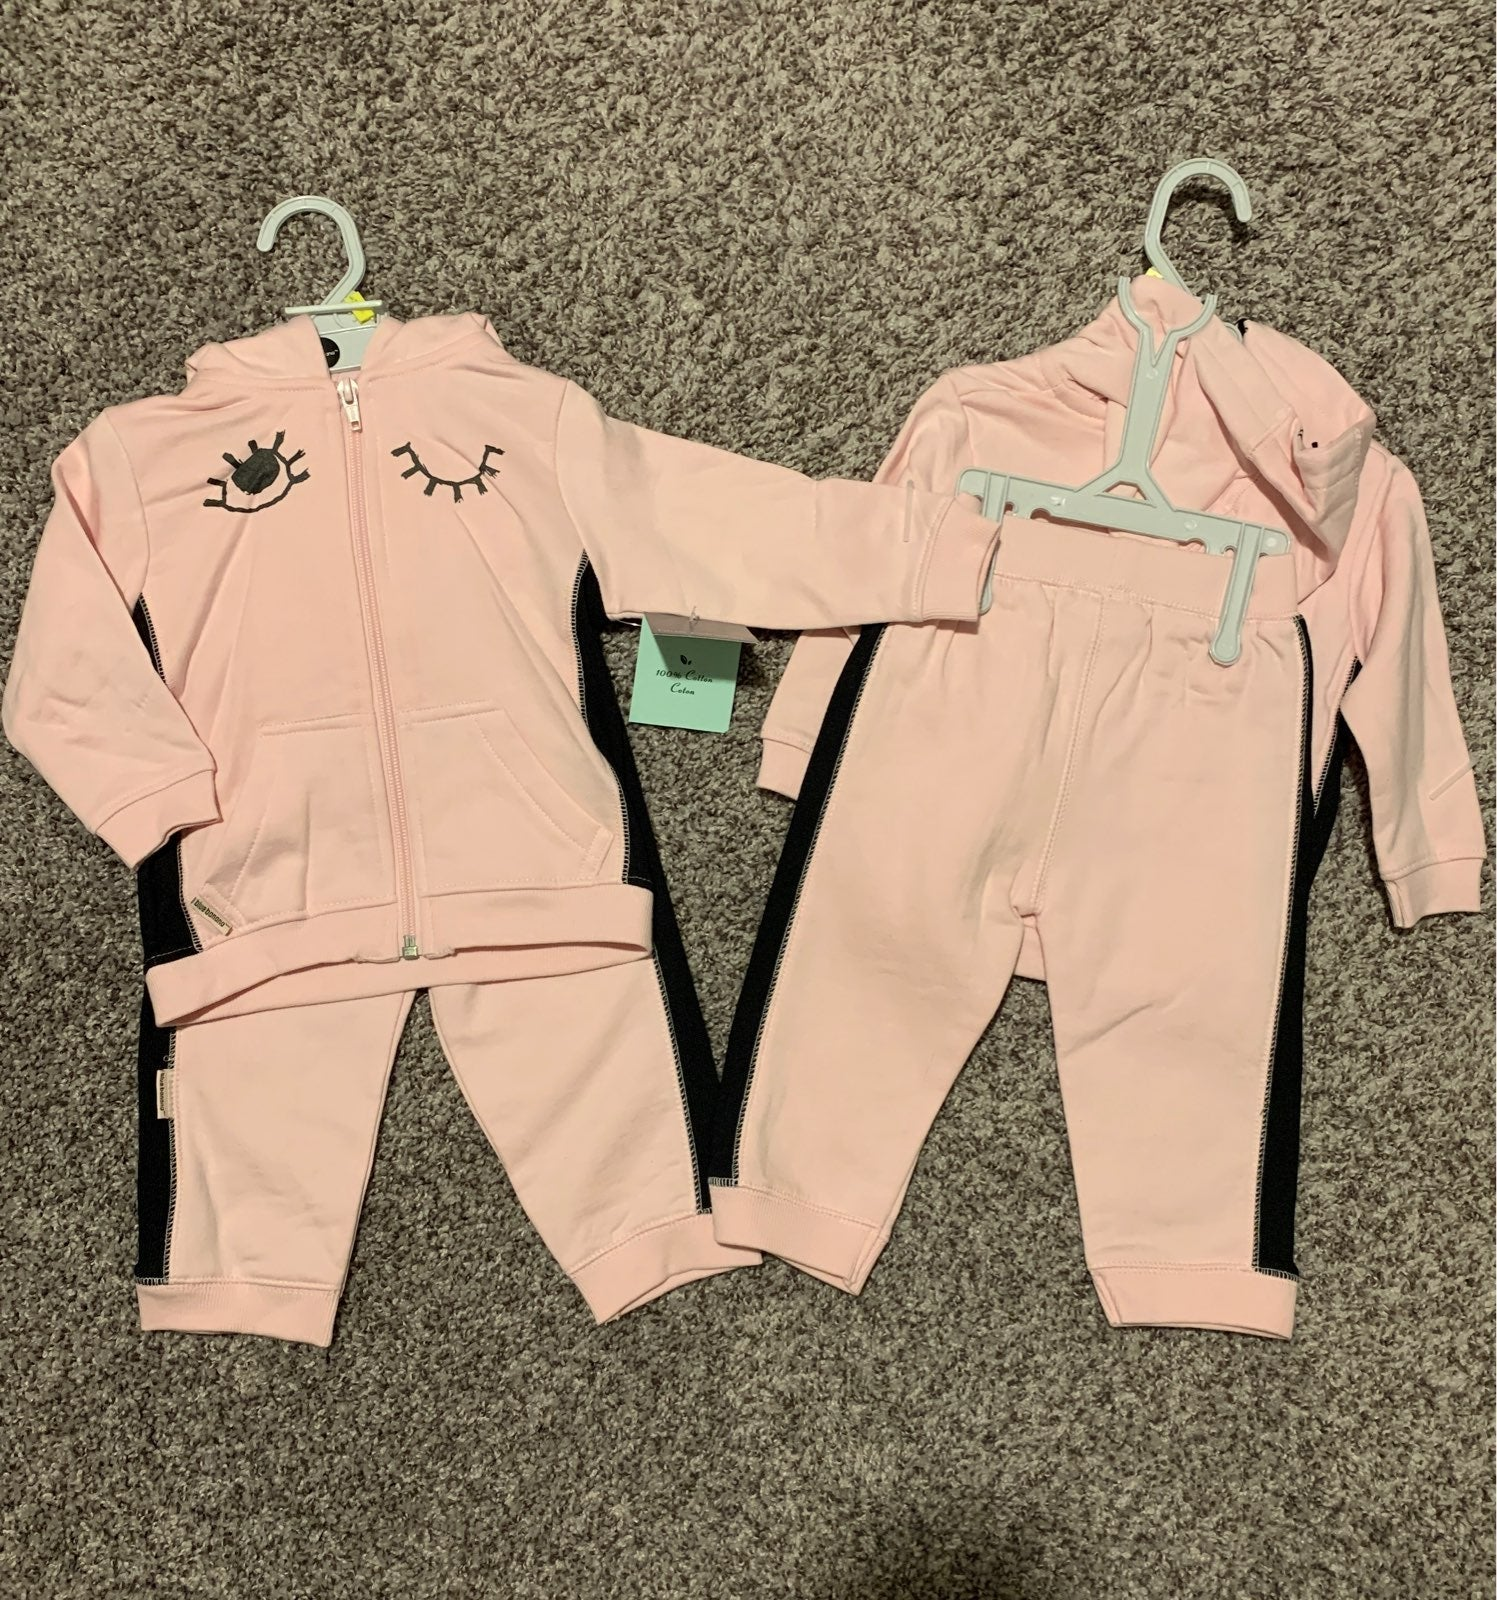 6M Blue Banana Outfits - NEW